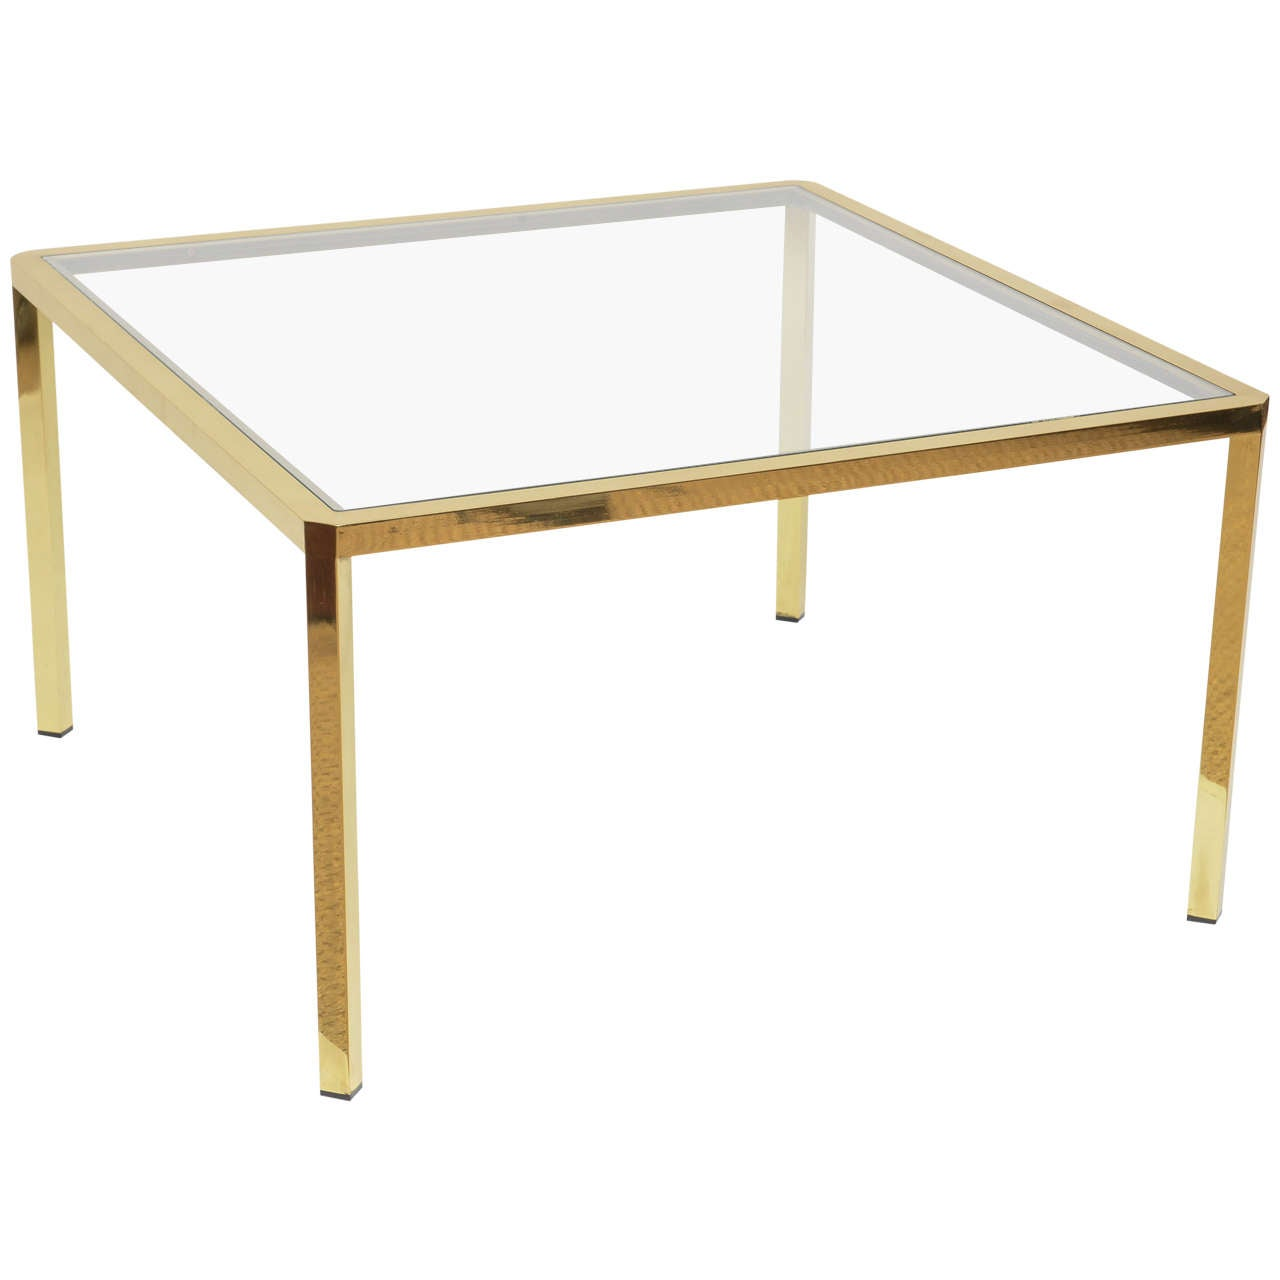 Mid- Century Modern Square Brass Glass Coffee Table from Italy For Sale